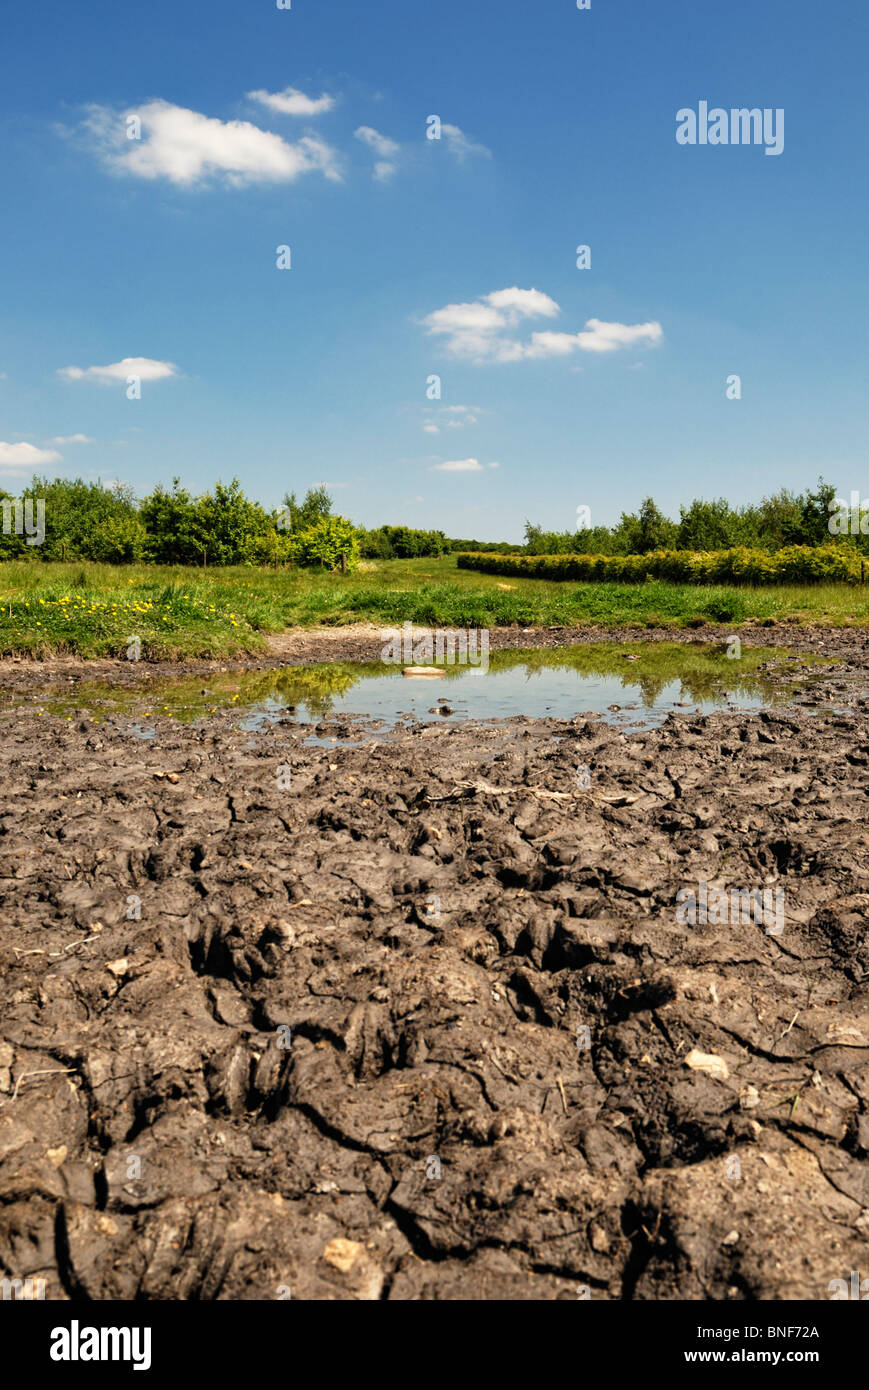 small pond drying up in hot weather - Stock Image